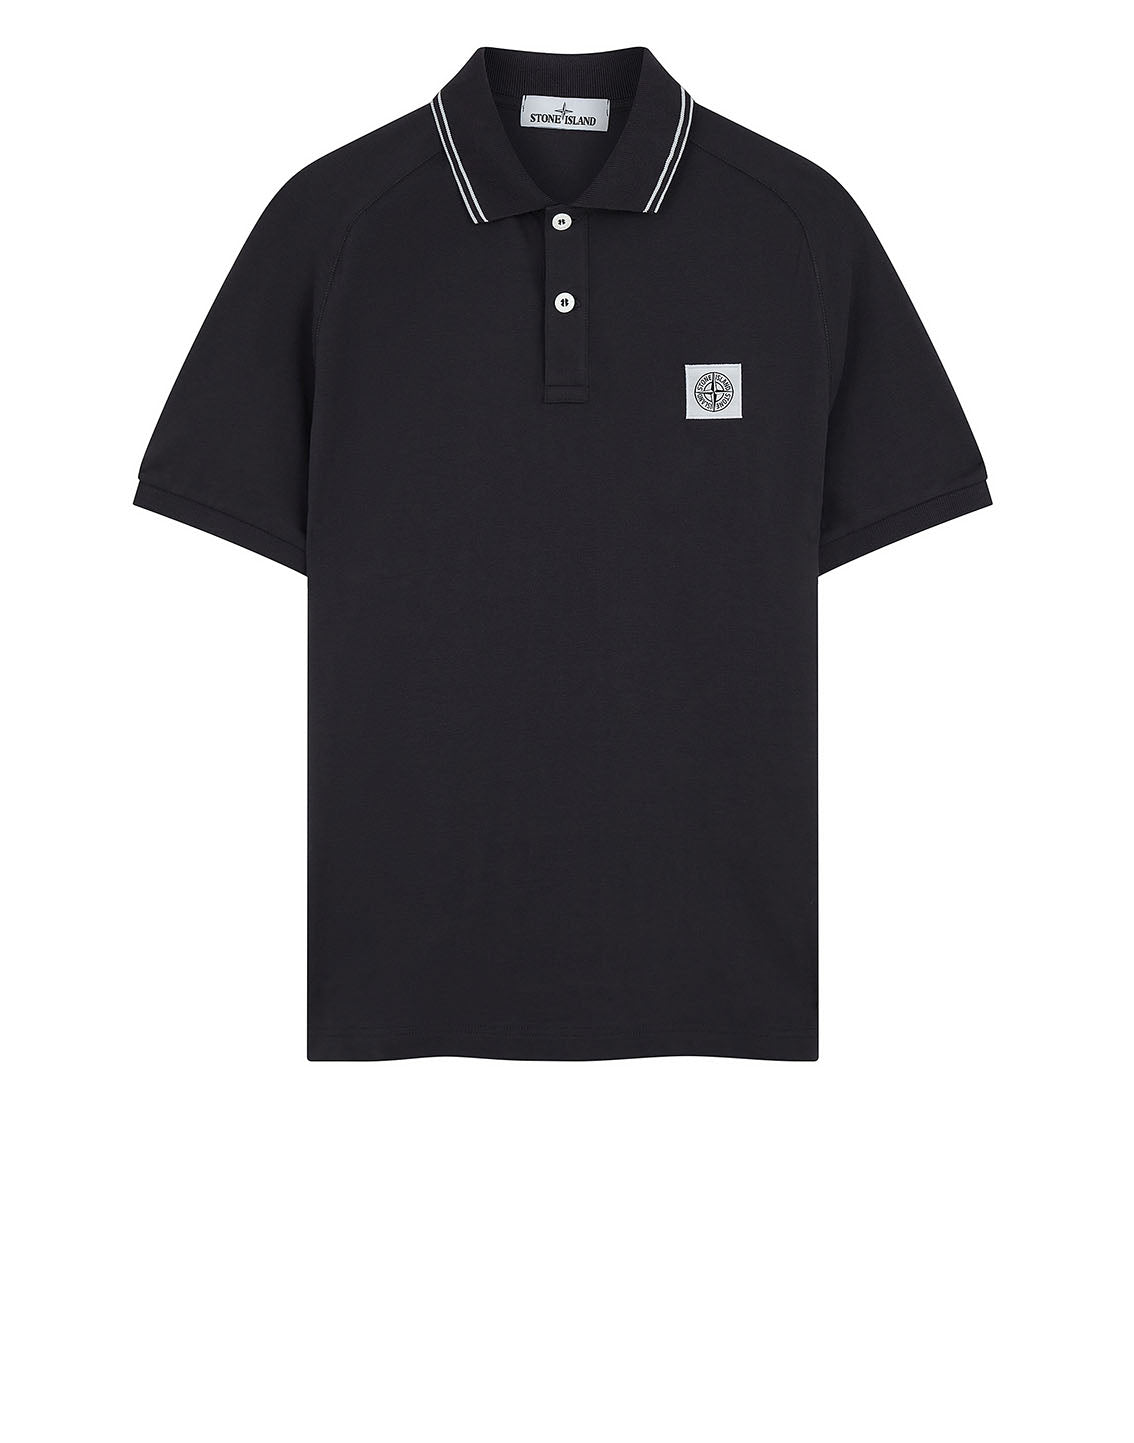 20616 Polo Shirt in Charcoal